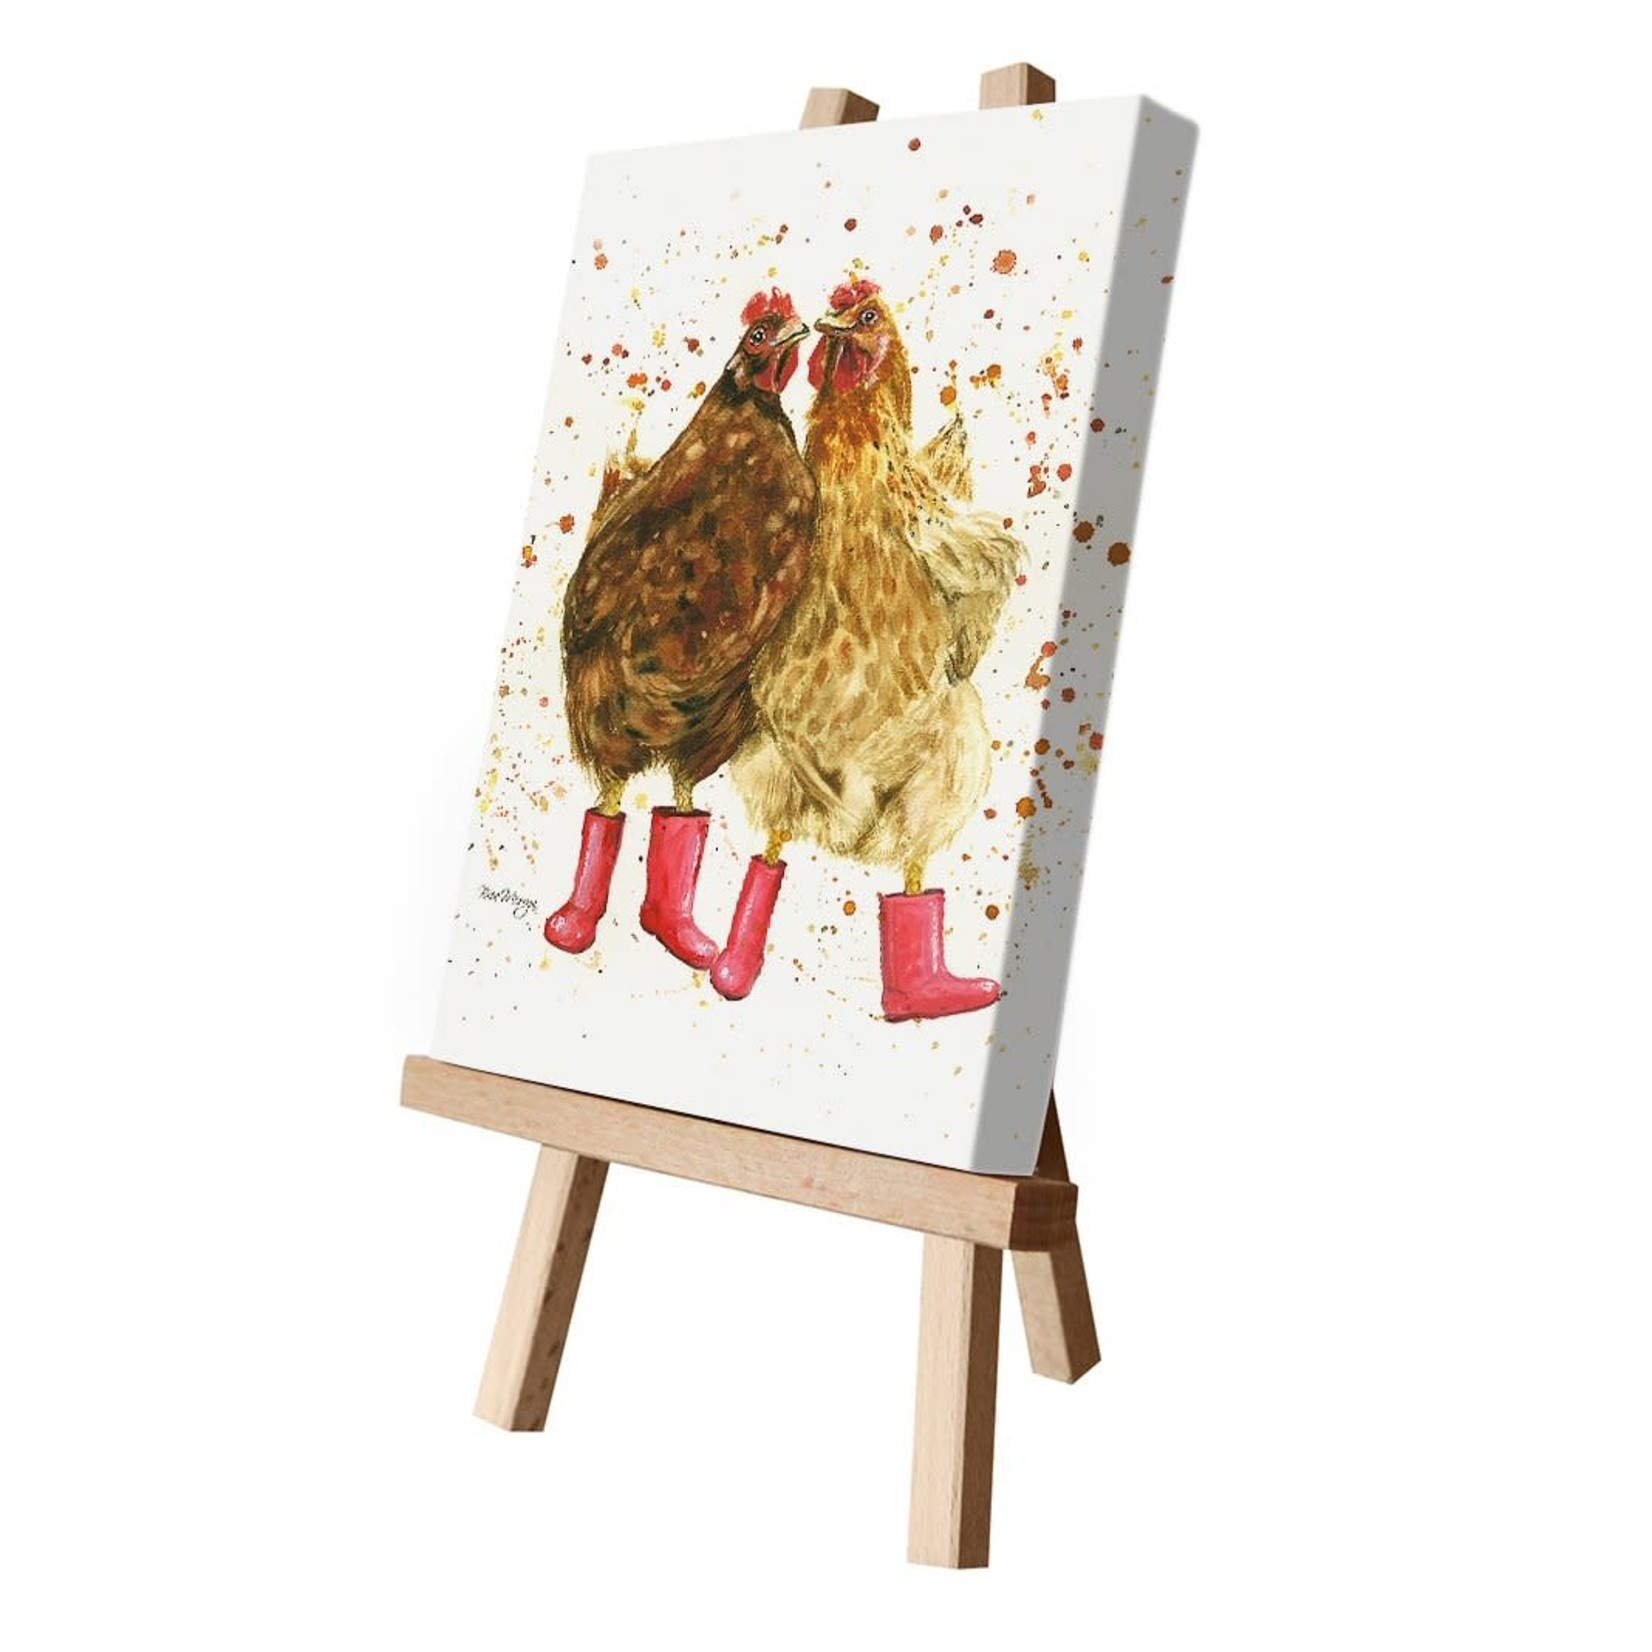 Bree Merryn Chick Chat in Boots Canvas Cutie 15 x 20 - Chickens